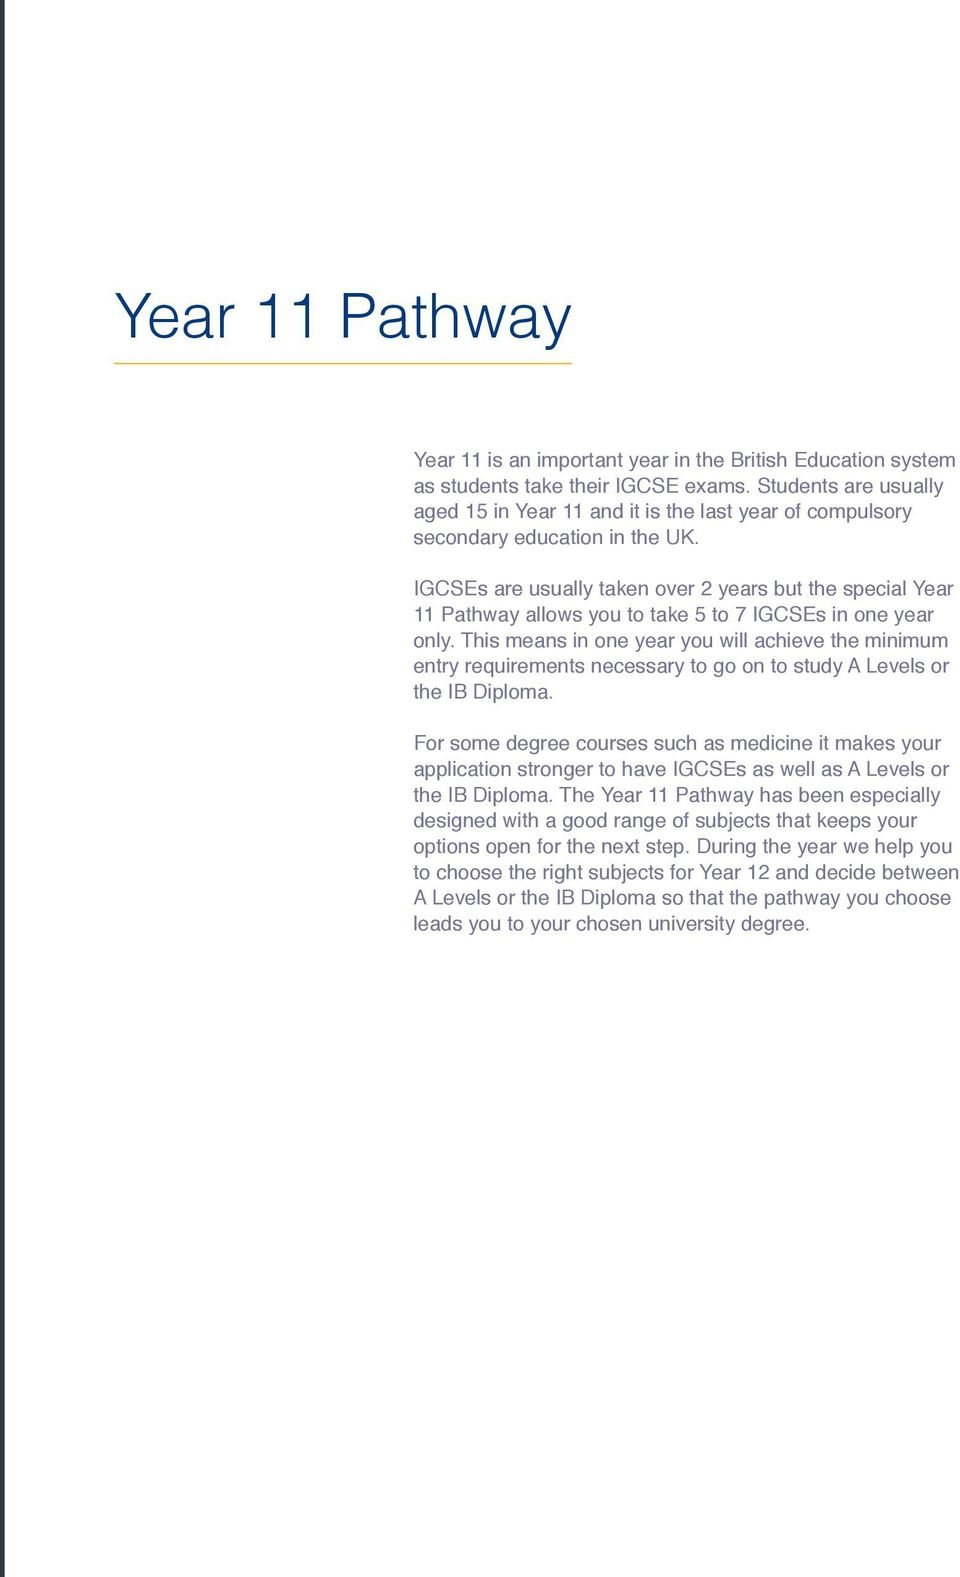 s are usually taken over 2 years but the special Year 11 Pathway allows you to take 5 to 7 s in one year only.